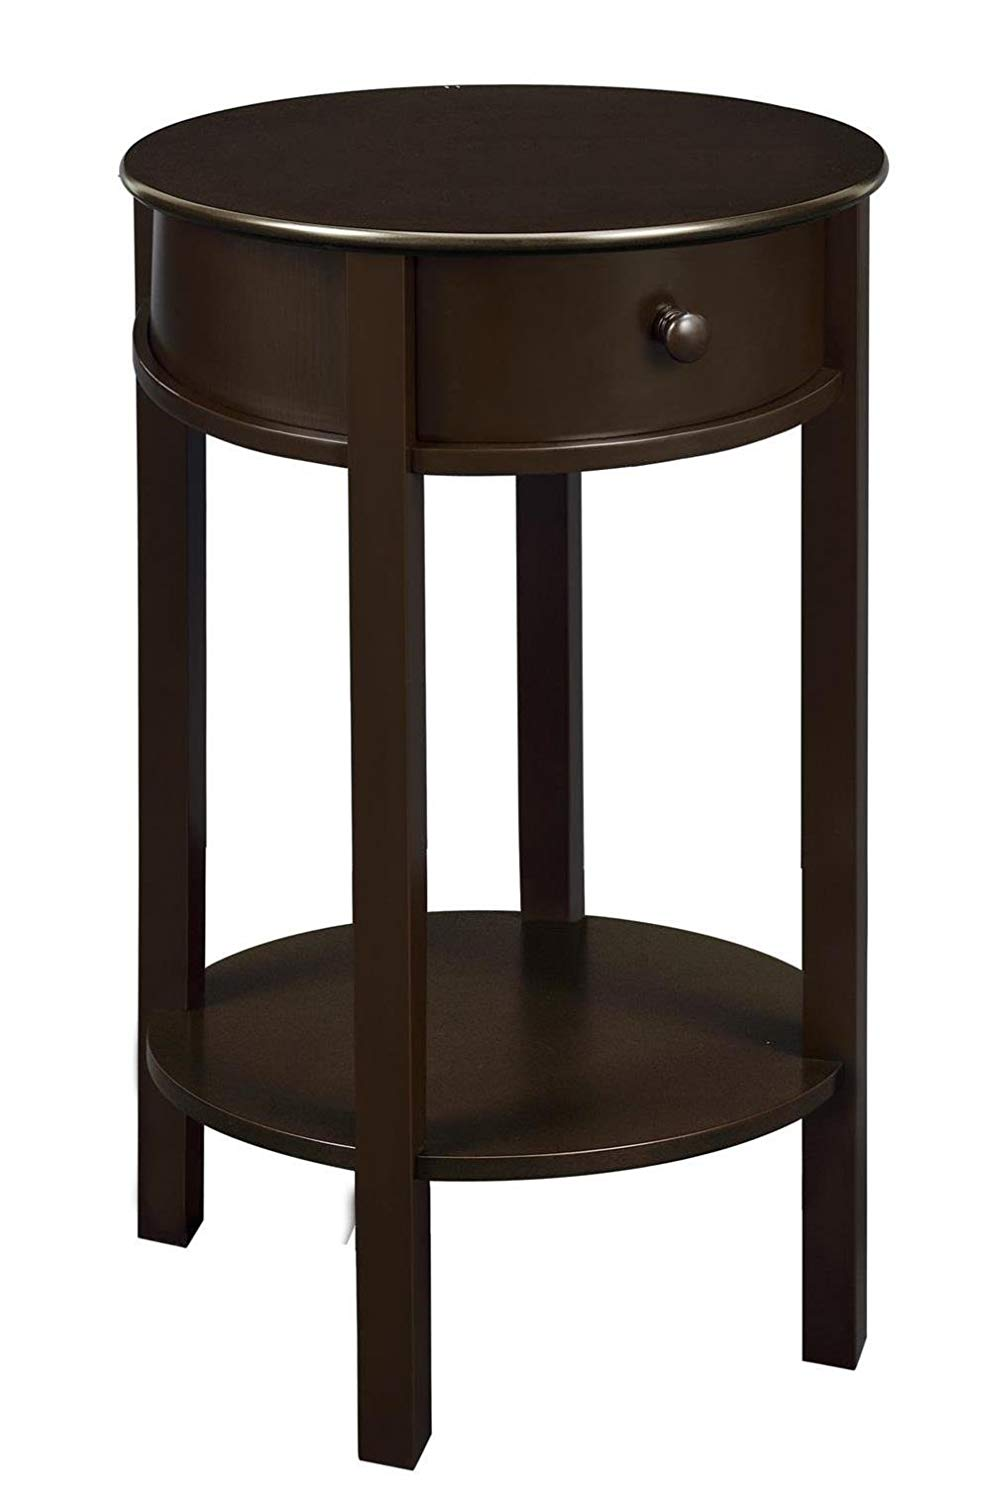 ameriwood home tipton round accent table espresso kyill set rosewood tall end tables coffee brown kitchen dining hidden storage furniture black glass living room baker lucite